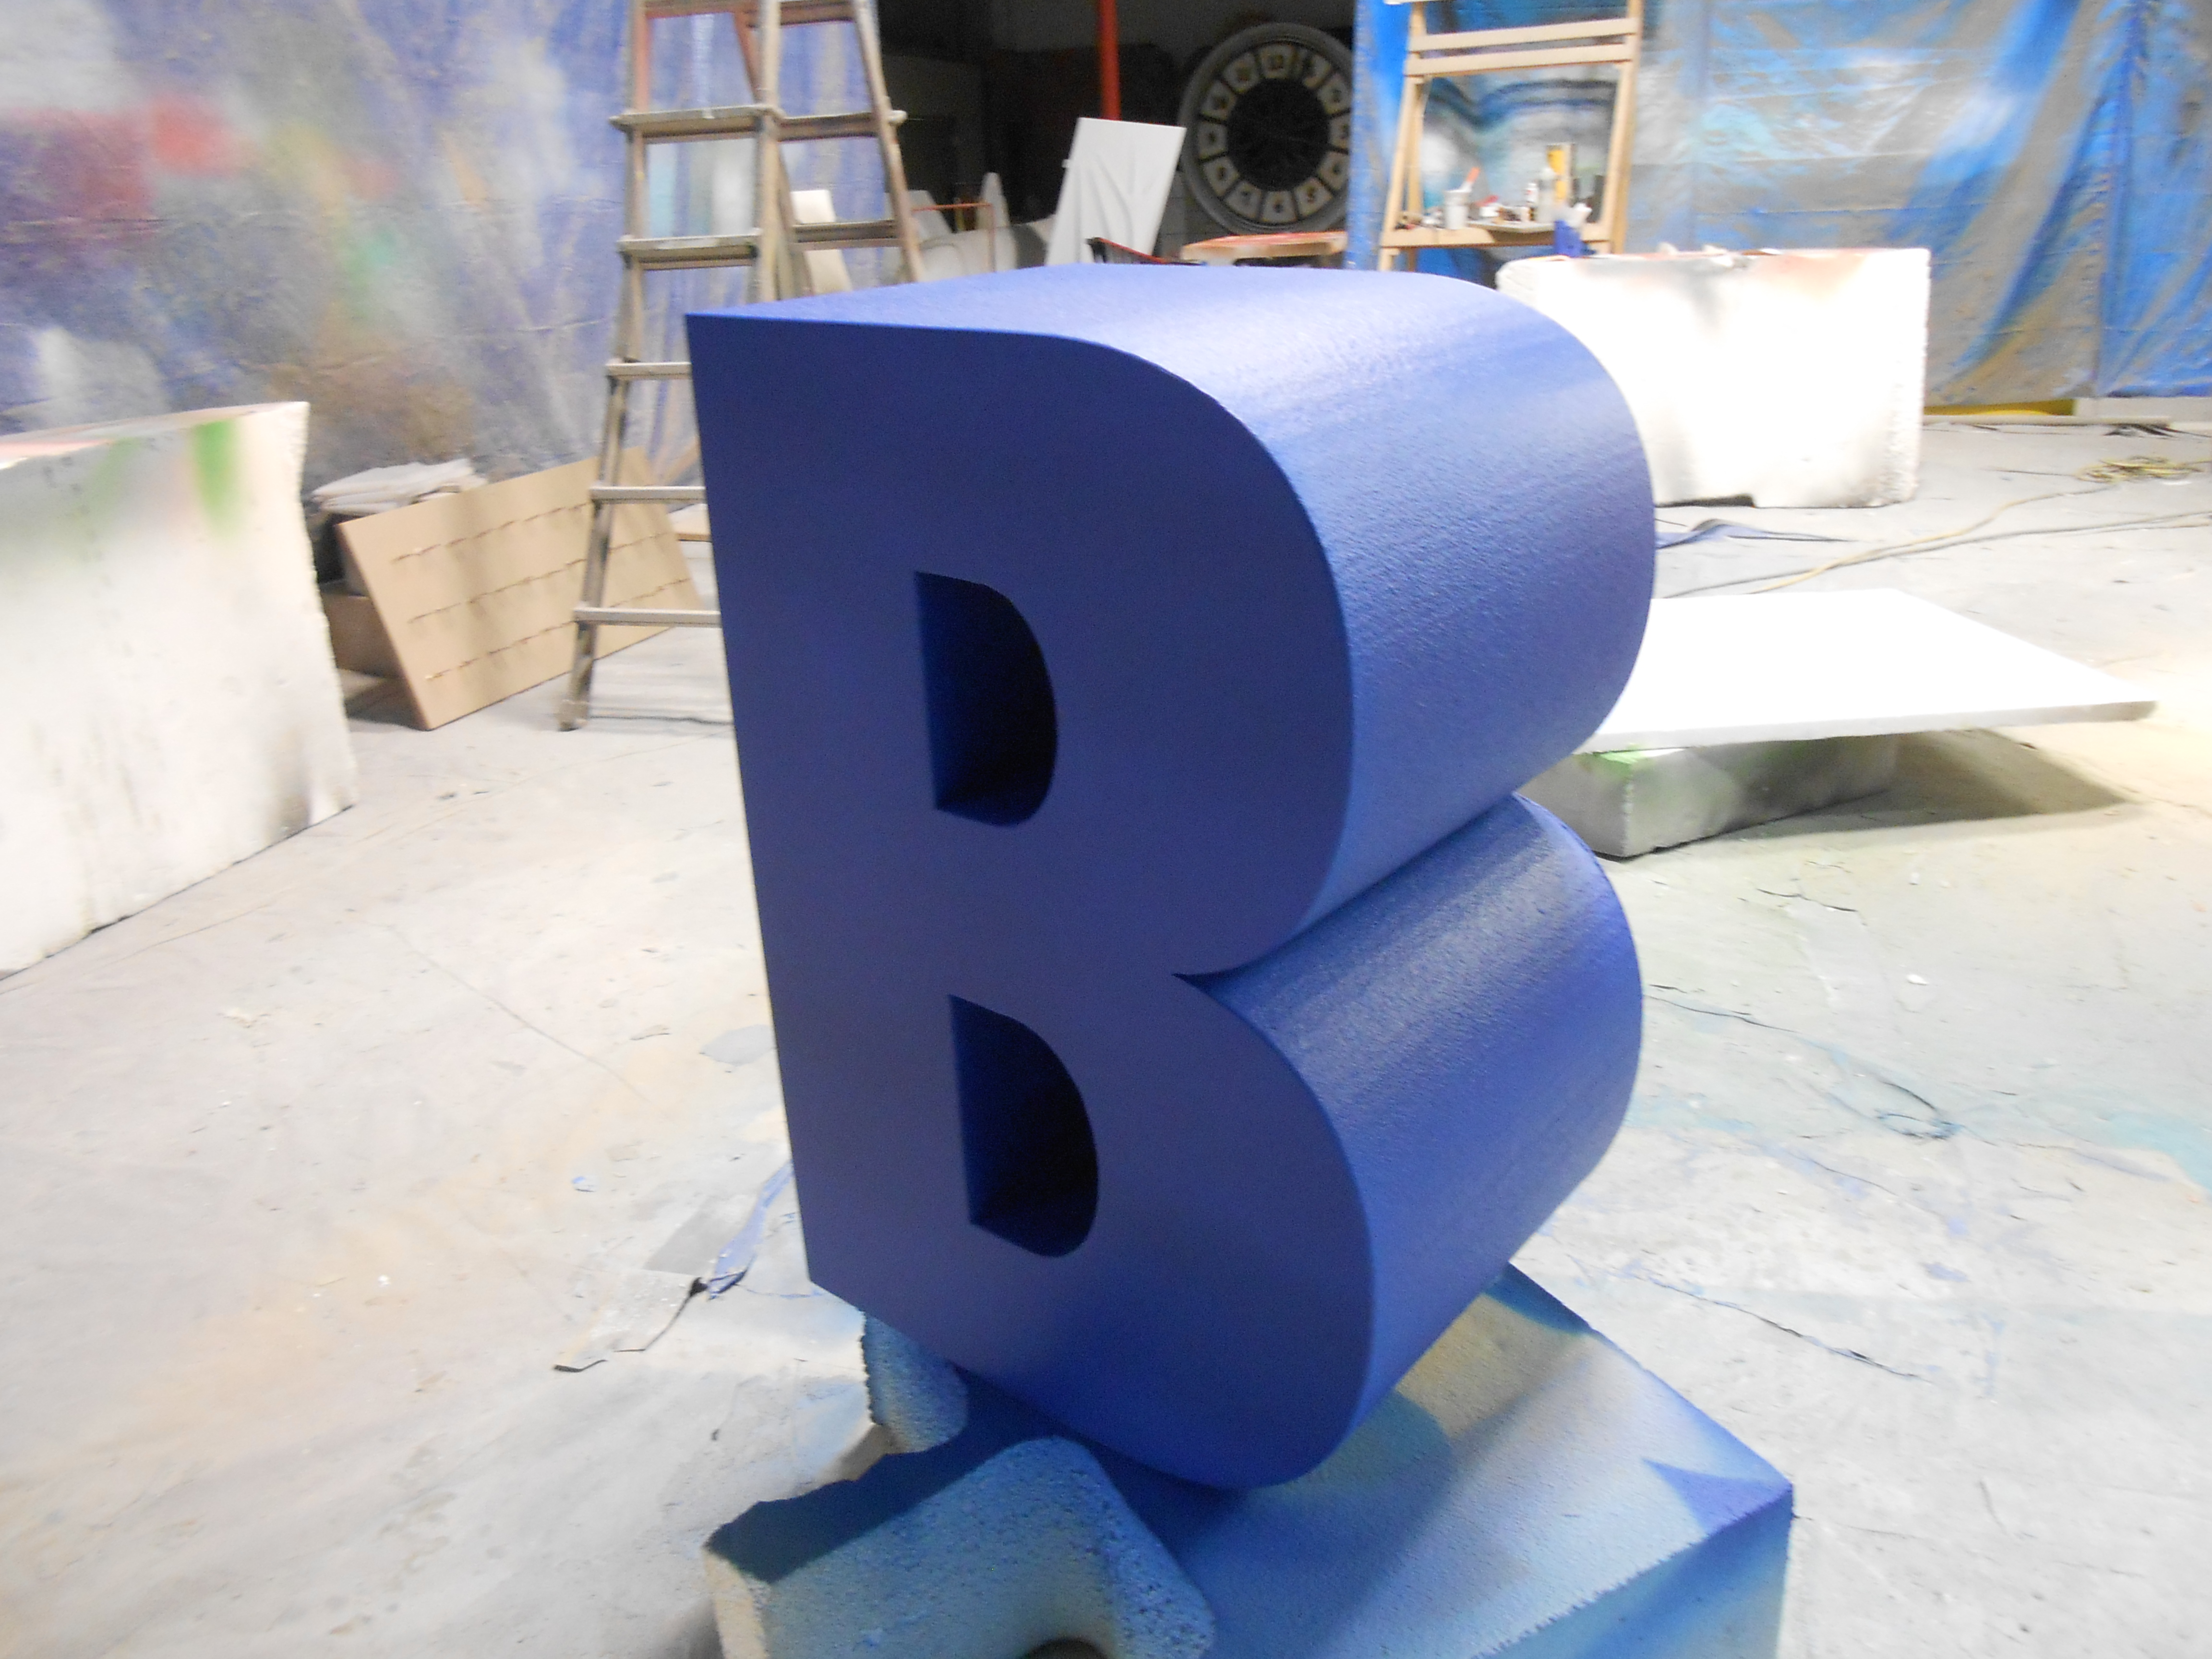 3d yellow 2 polystyrene letters oversized letters for events marketing trade shows from 934